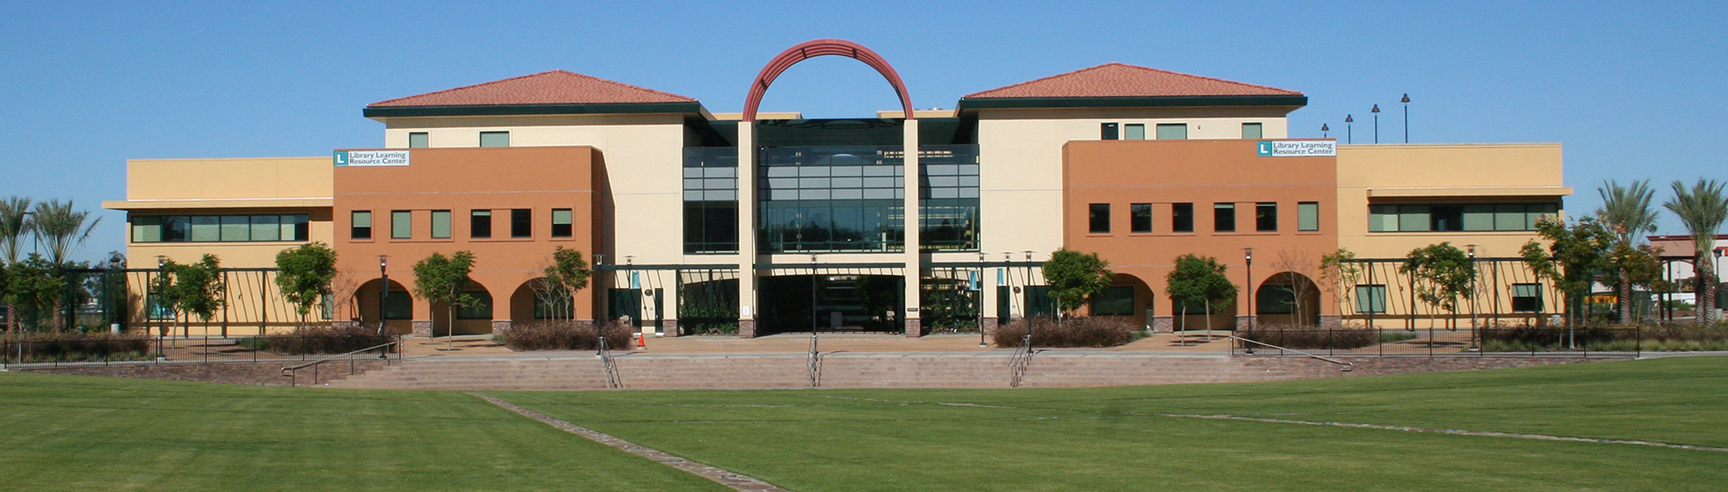 Miramar College Library